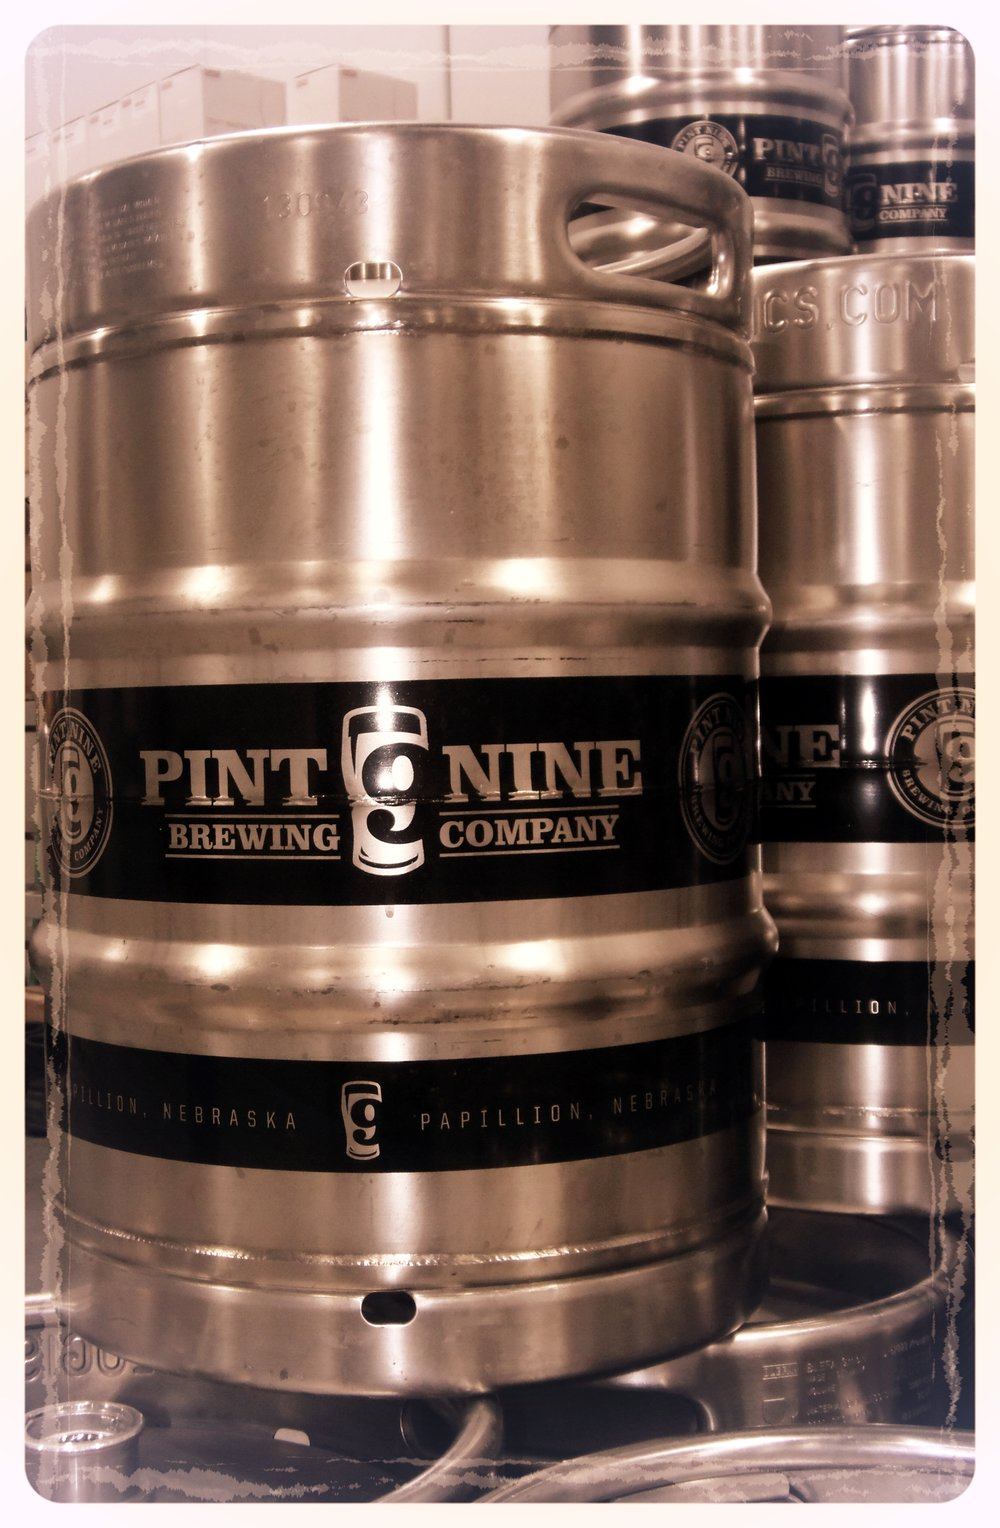 Keep those kegs coming - it is great to be able to get a Pint Nine beer around town!